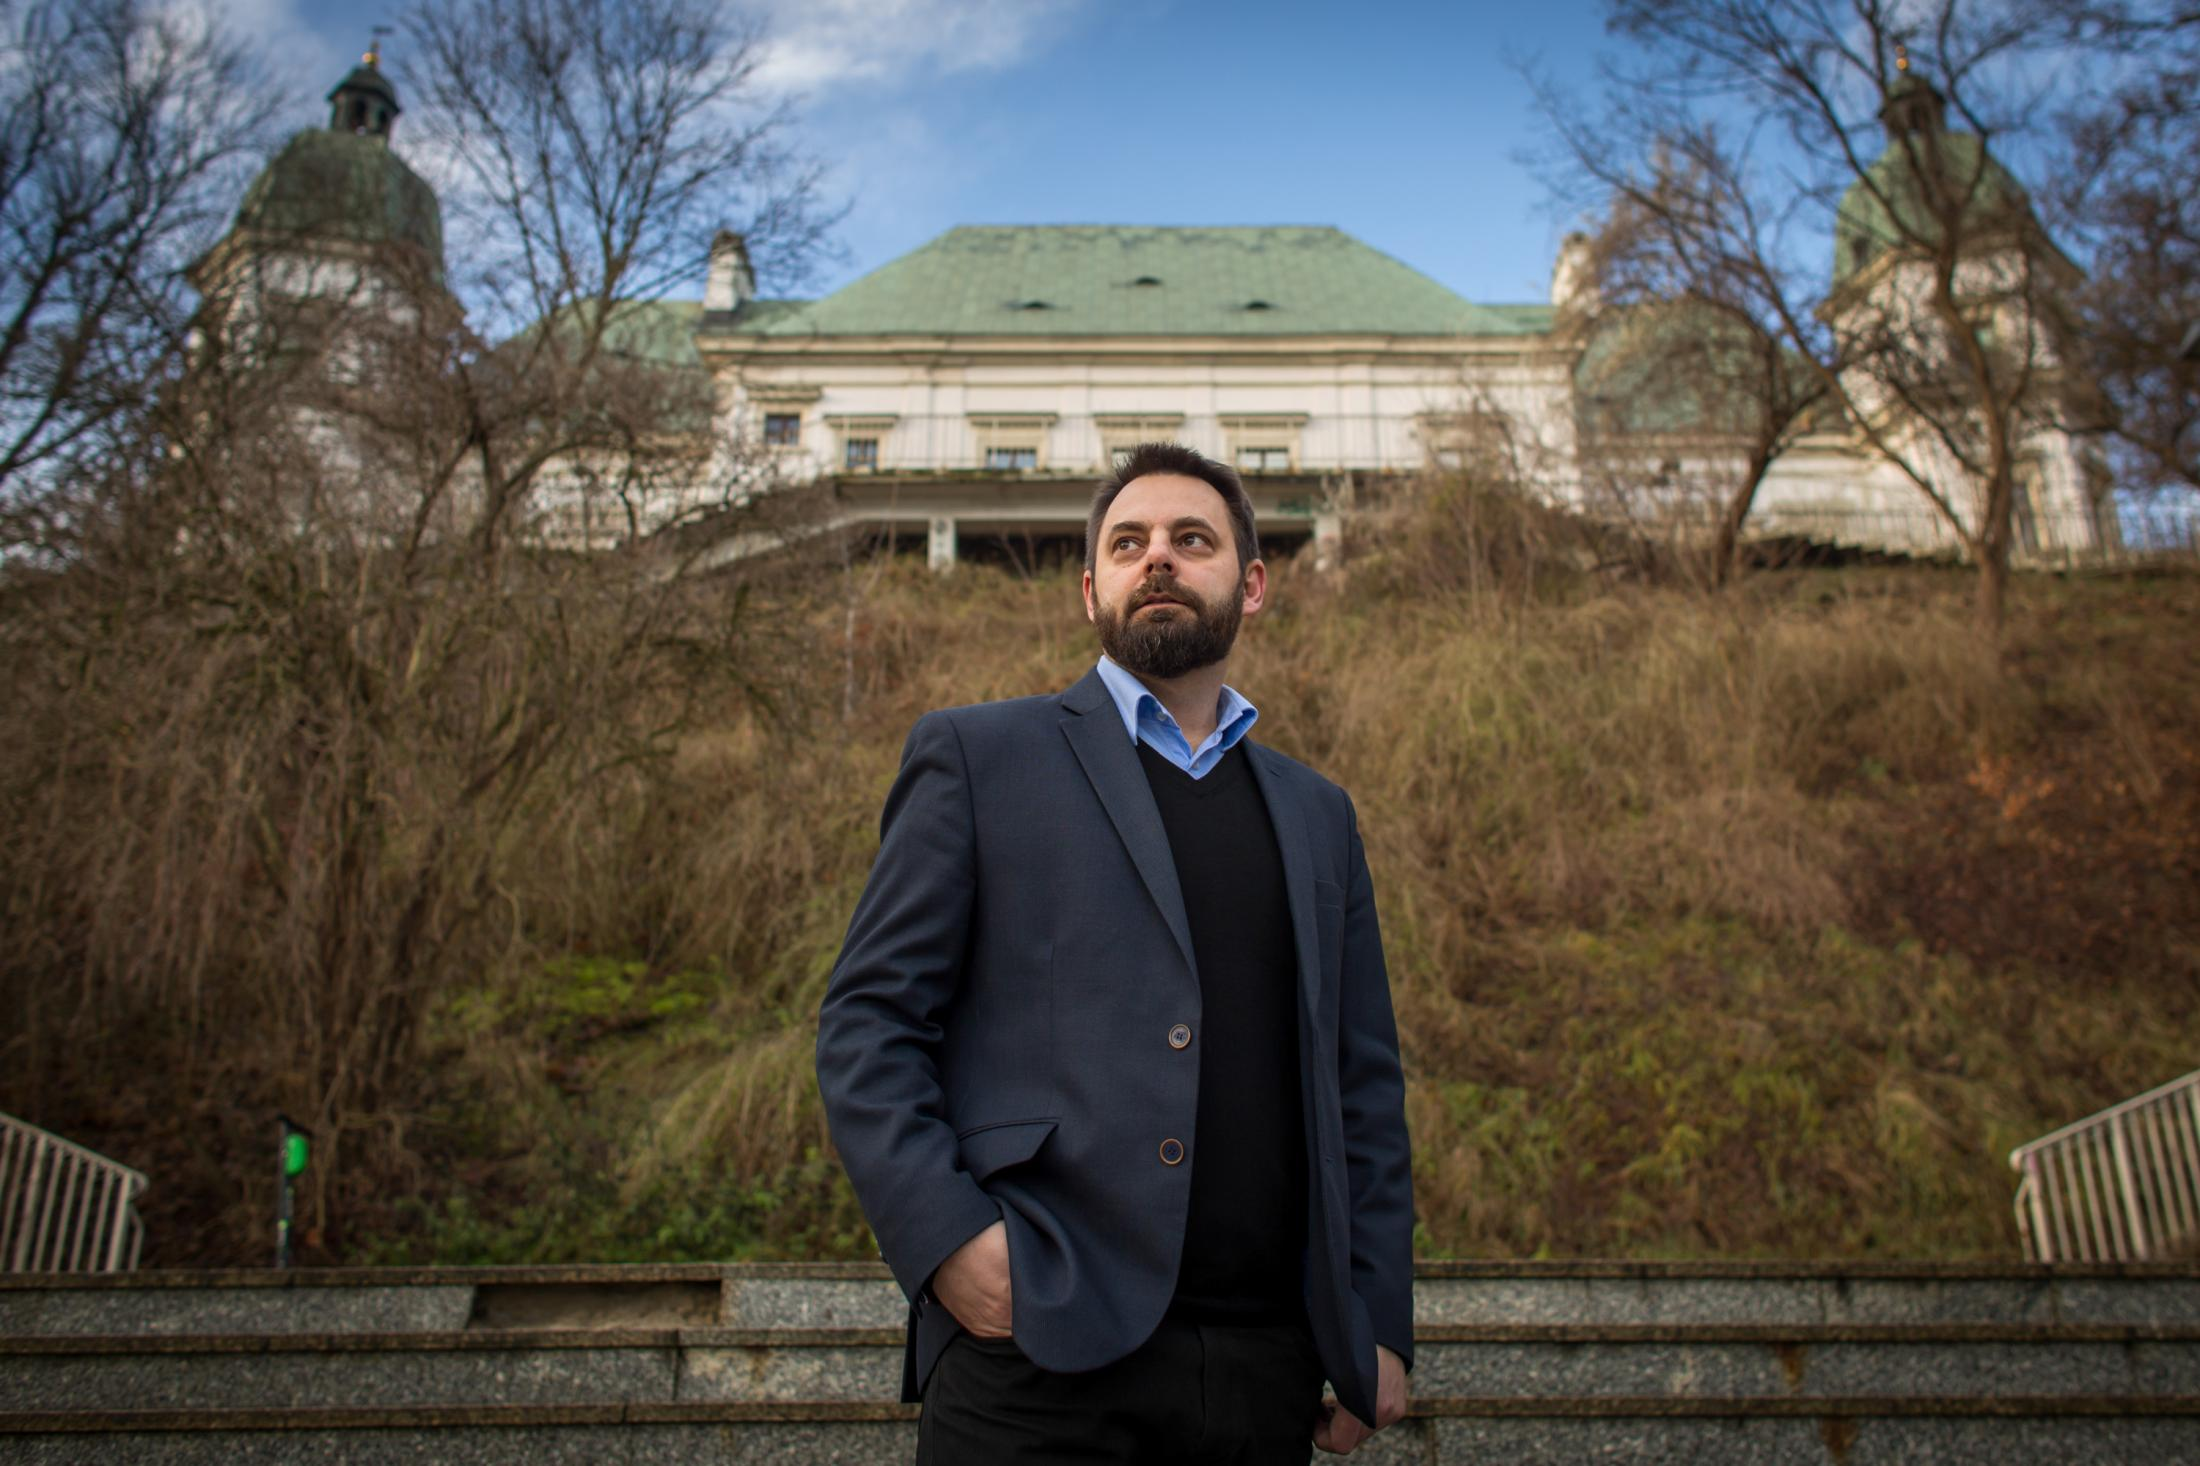 Piotr Bernatowicz, the new director of the Ujazdowski Castle Center for Contemporary Art in Warsaw. Bernatowicz wants to reshape a leading Warsaw art space to show conservative works and challenge left-wing positions. Portrait for The New York Times